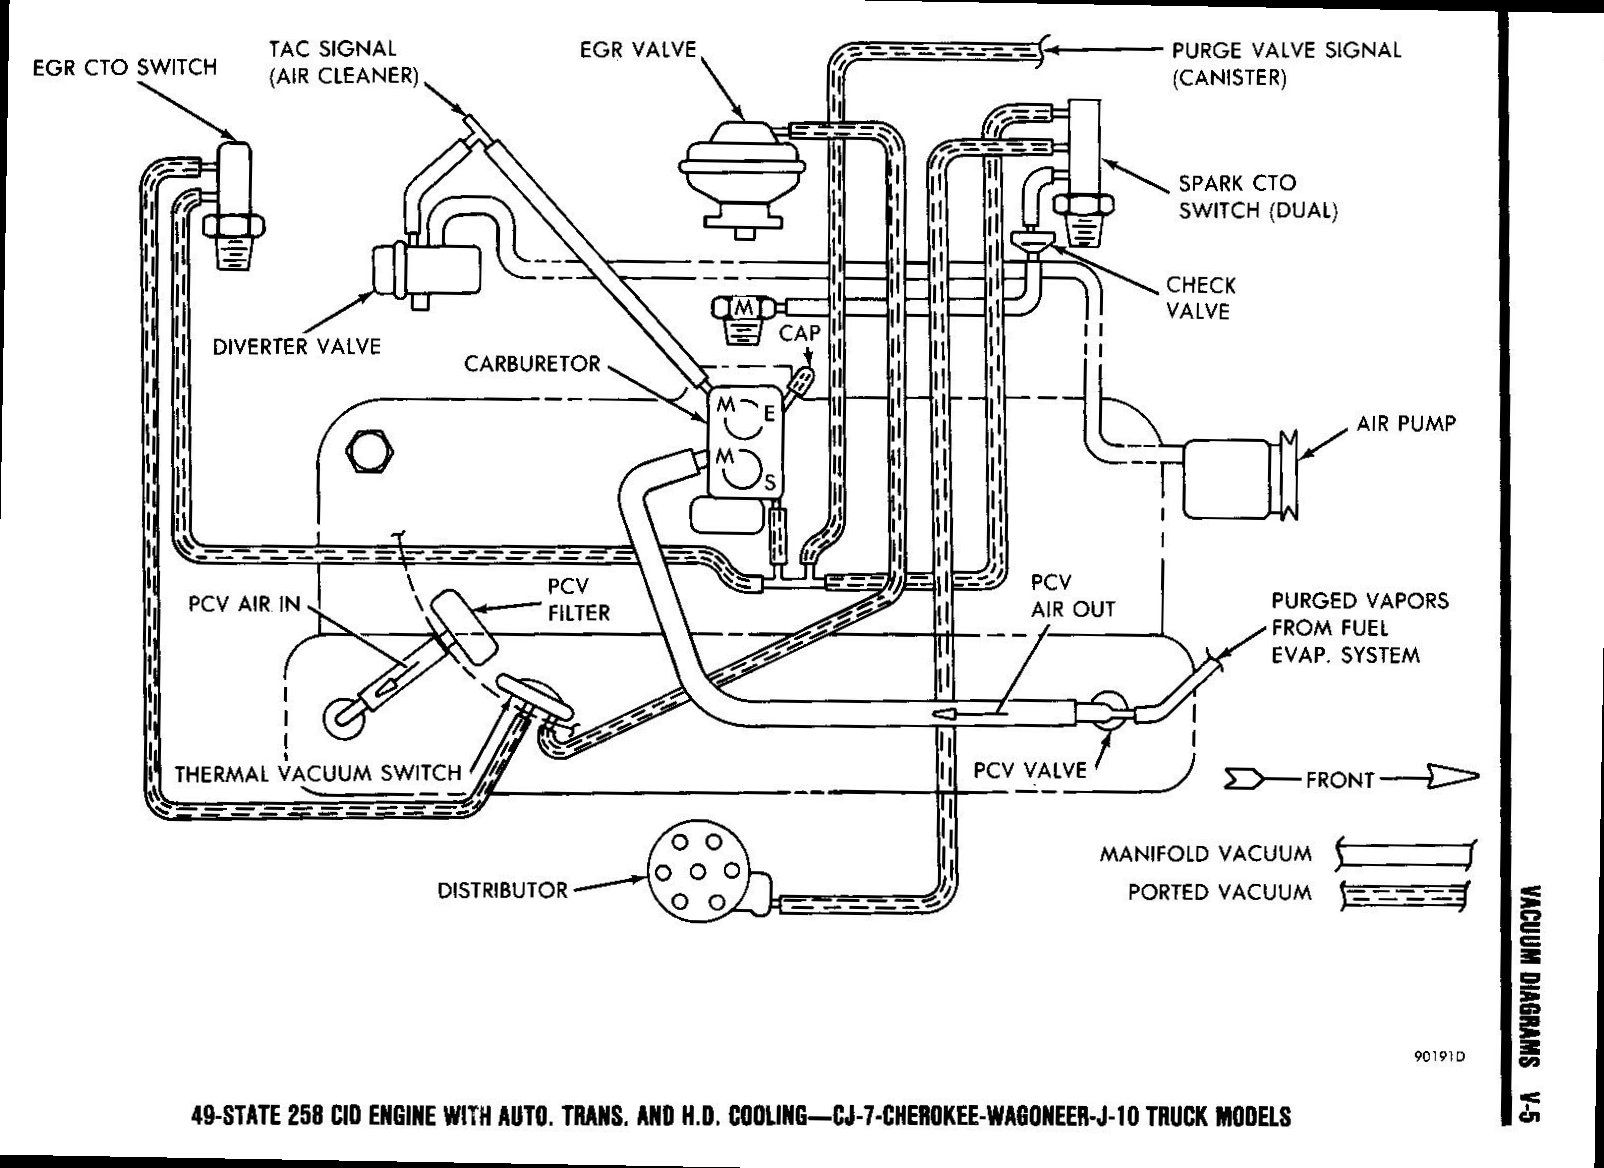 Cj7 Wiring Diagram Of Ups How To Install Inverter In 2 Rooms Cj5 258 Vacuum Jeepforum Jeep Pinterest